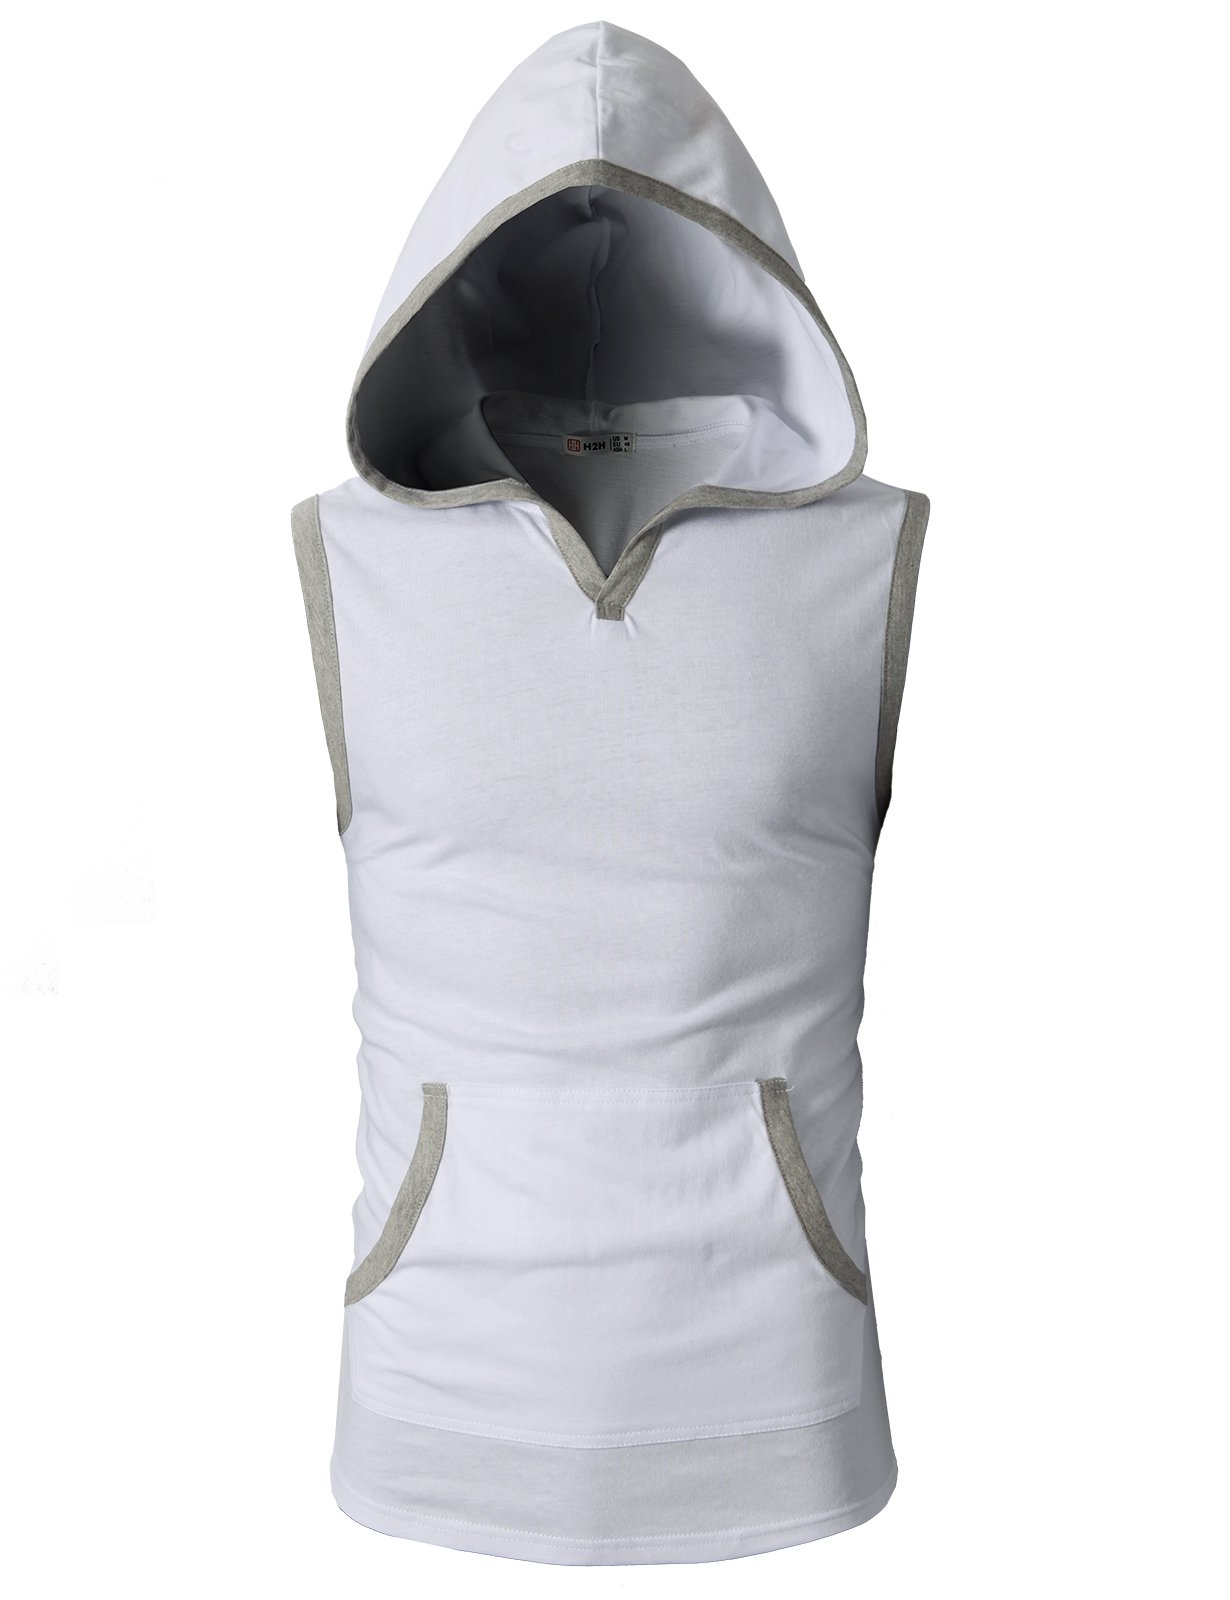 H2H Mens Fashion Slim Fit Sleeveless Lightweight Tank Tops with Front Pocket White US S/Asia M (CMTTK015)